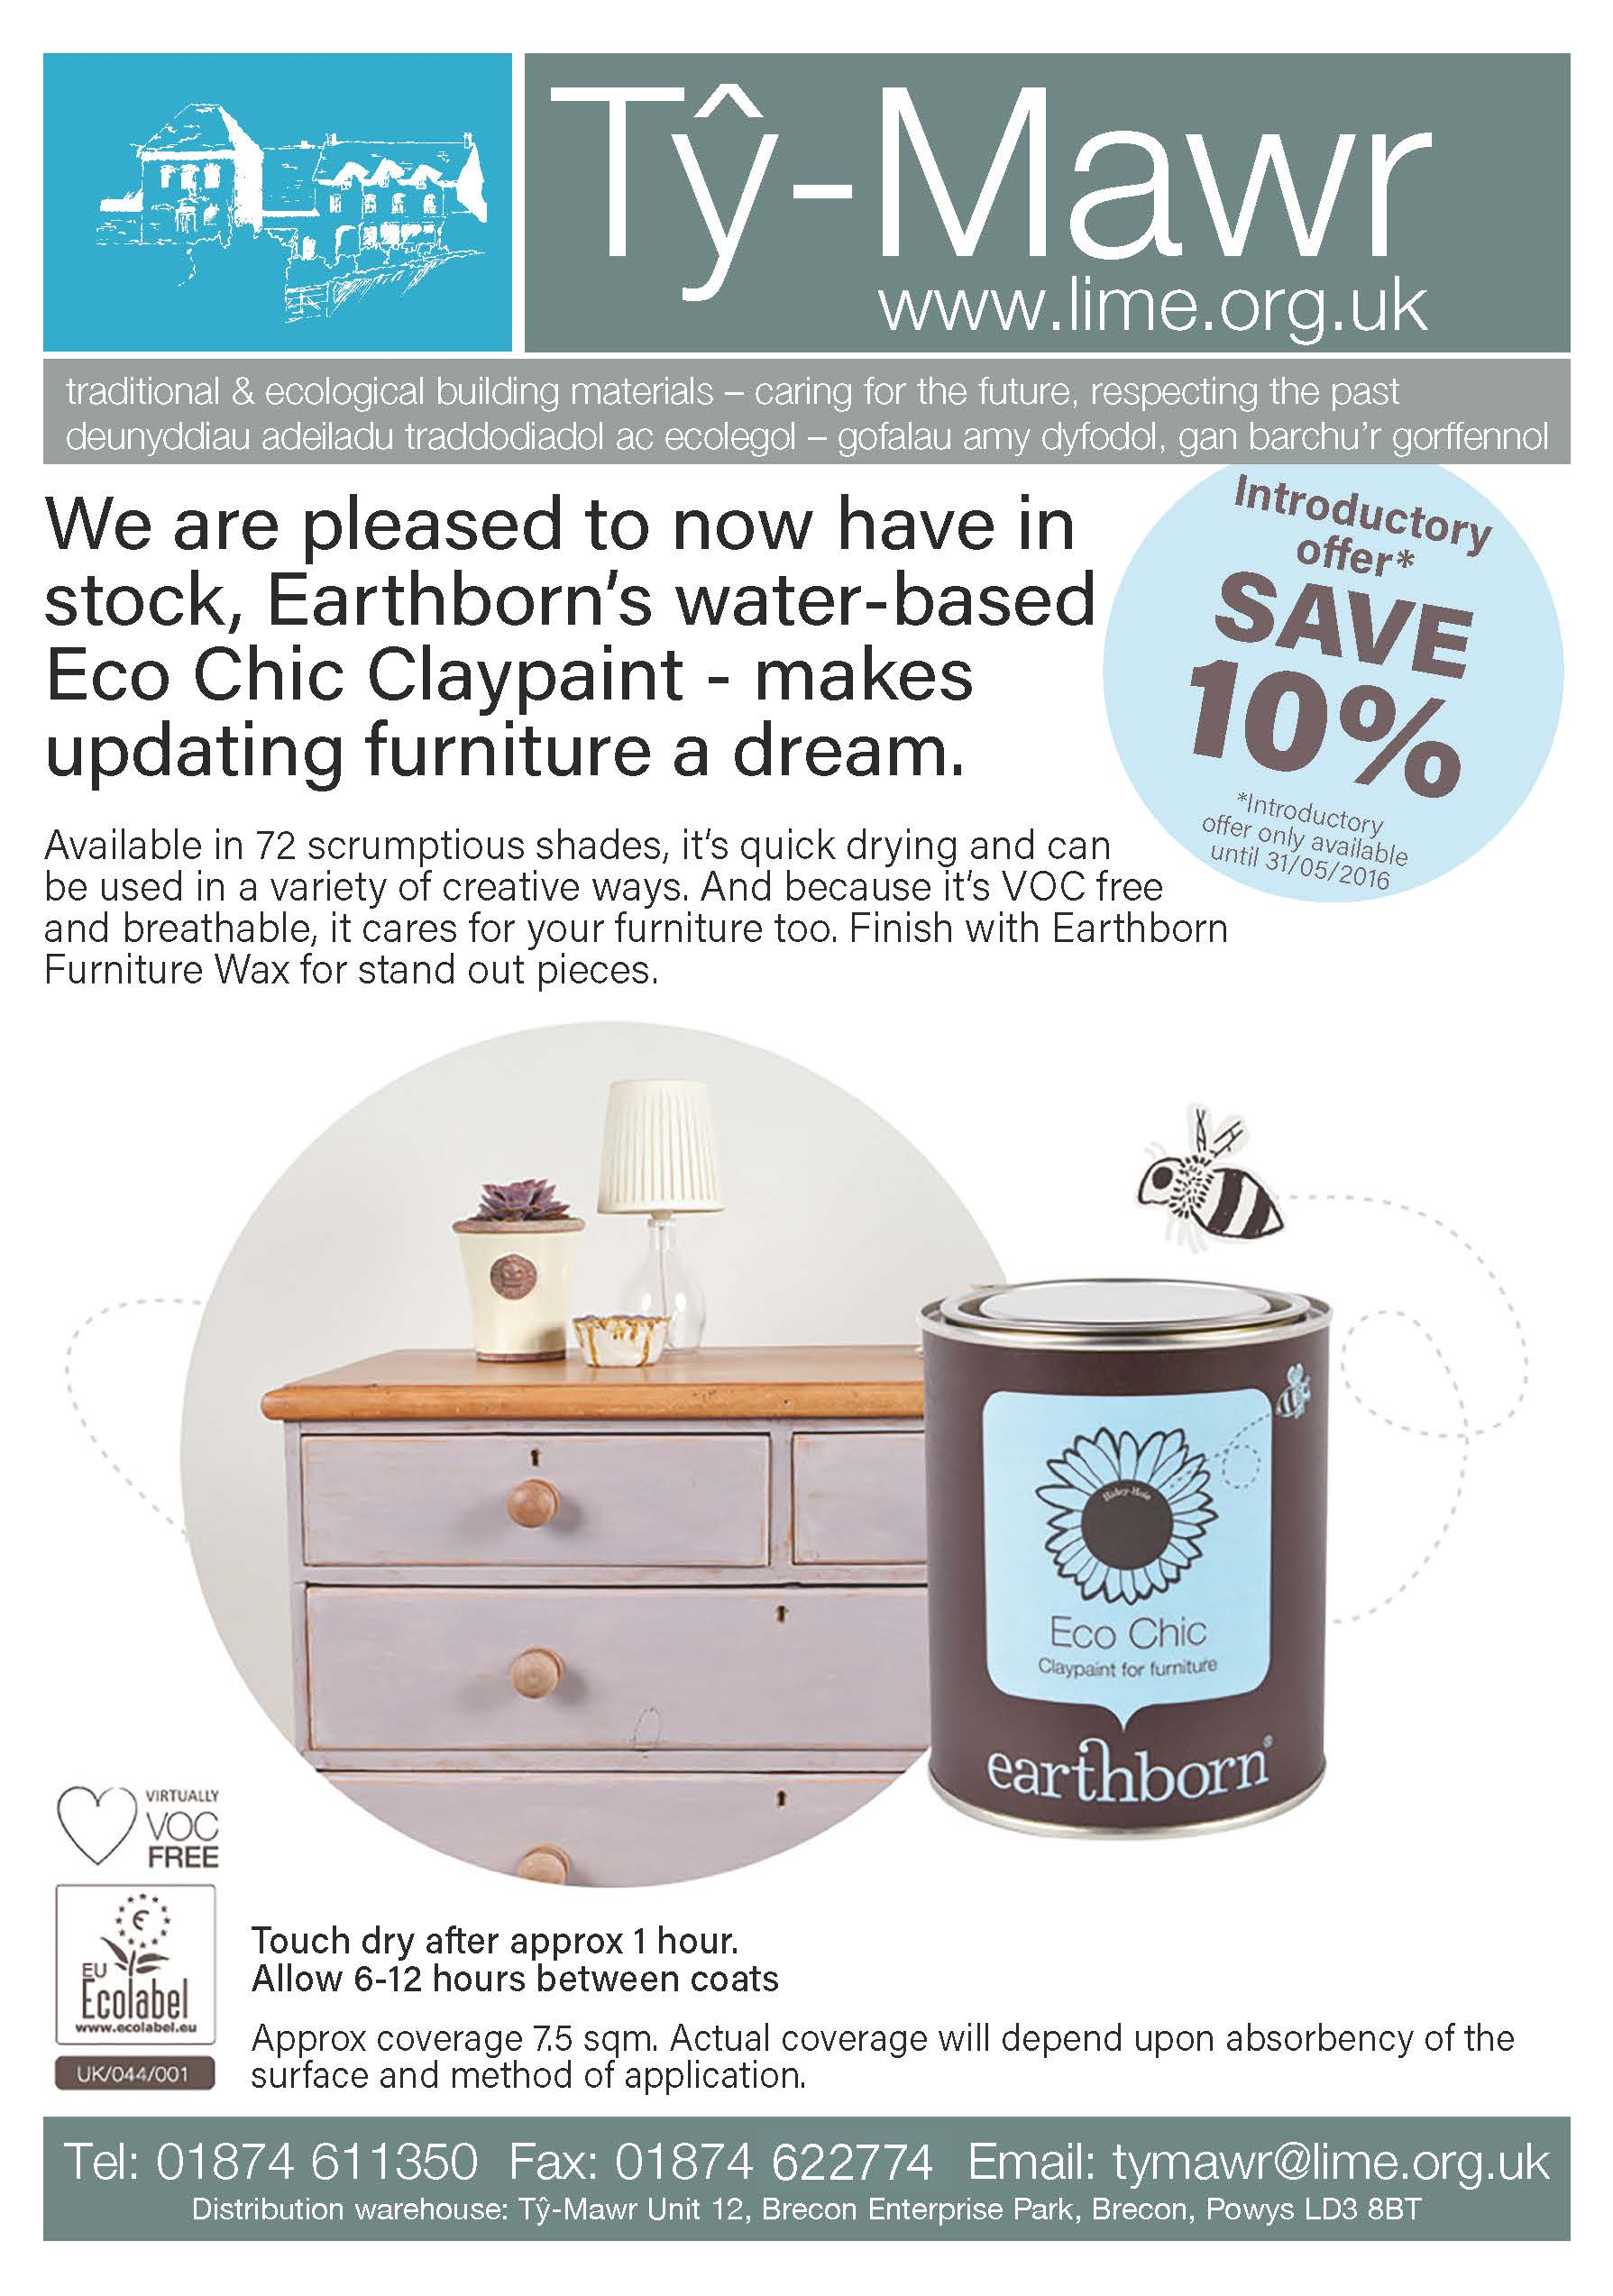 Earthborn Eco Chic Claypaint Offer May 2016